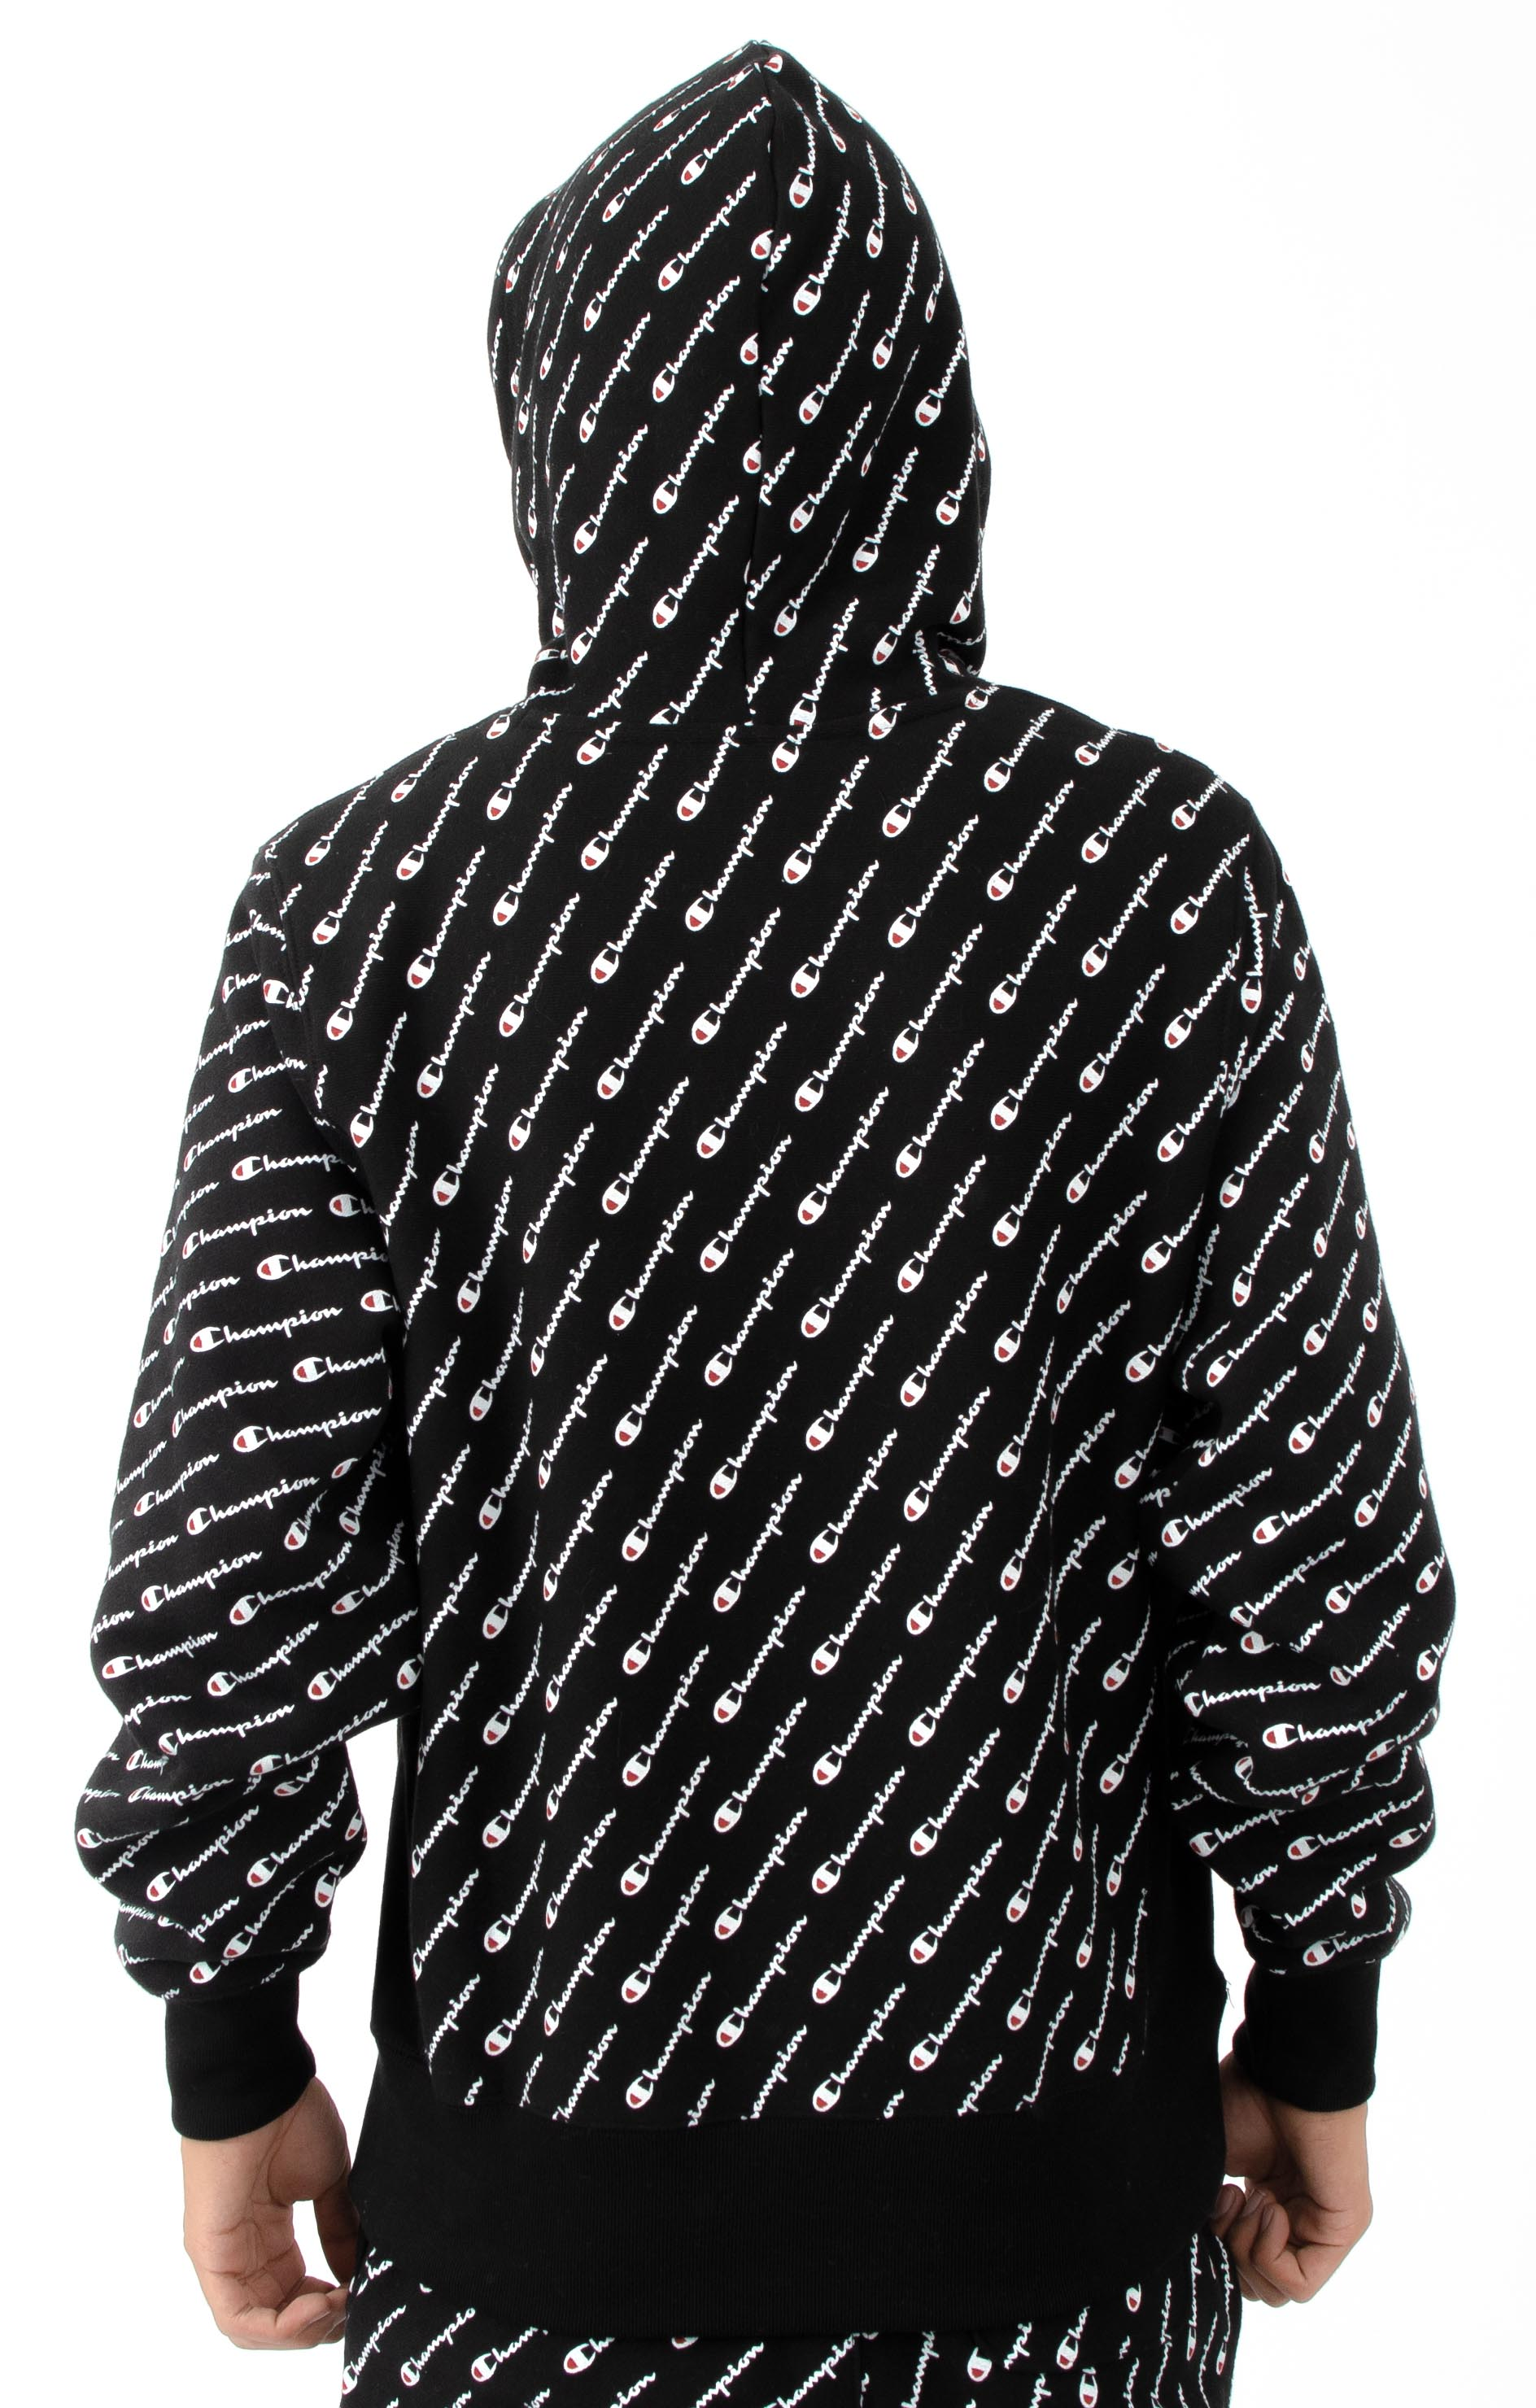 RW Diagonal All Over Print Pullover Hoodie - Black 3